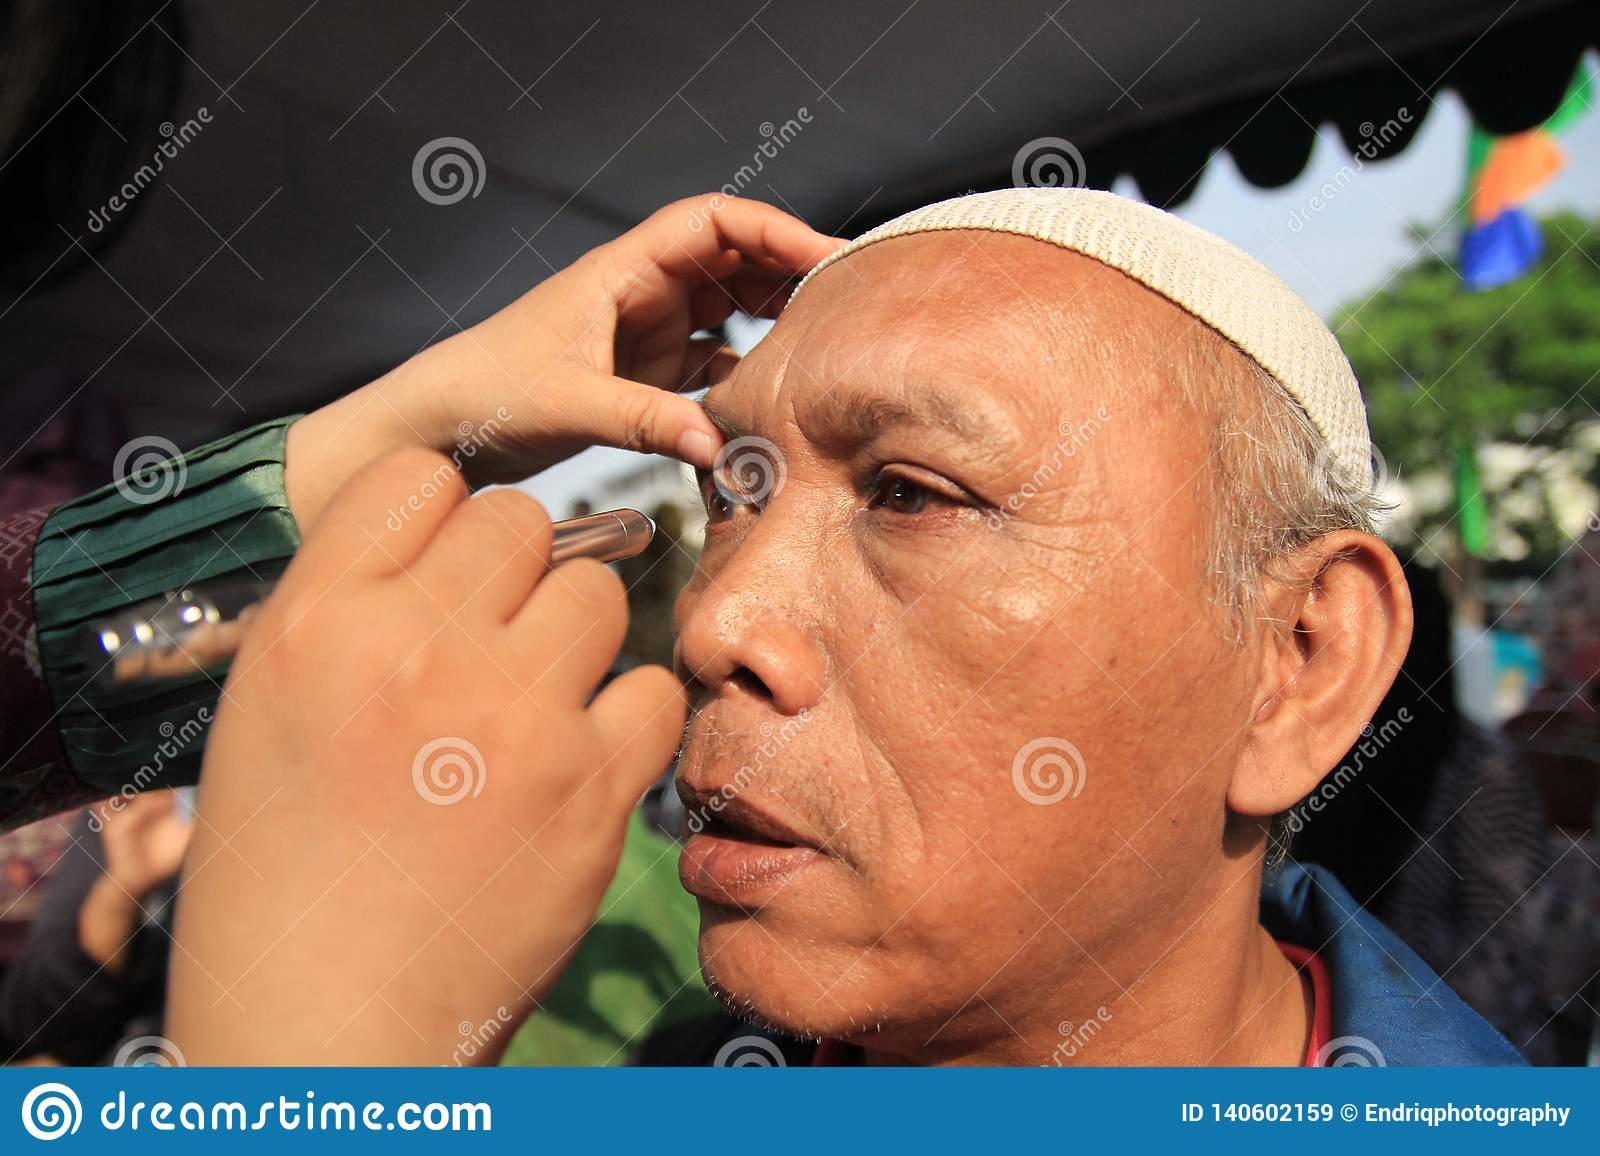 Surabaya indonesia, may 21, 2014. a health worker is checking the patient`s eyes.